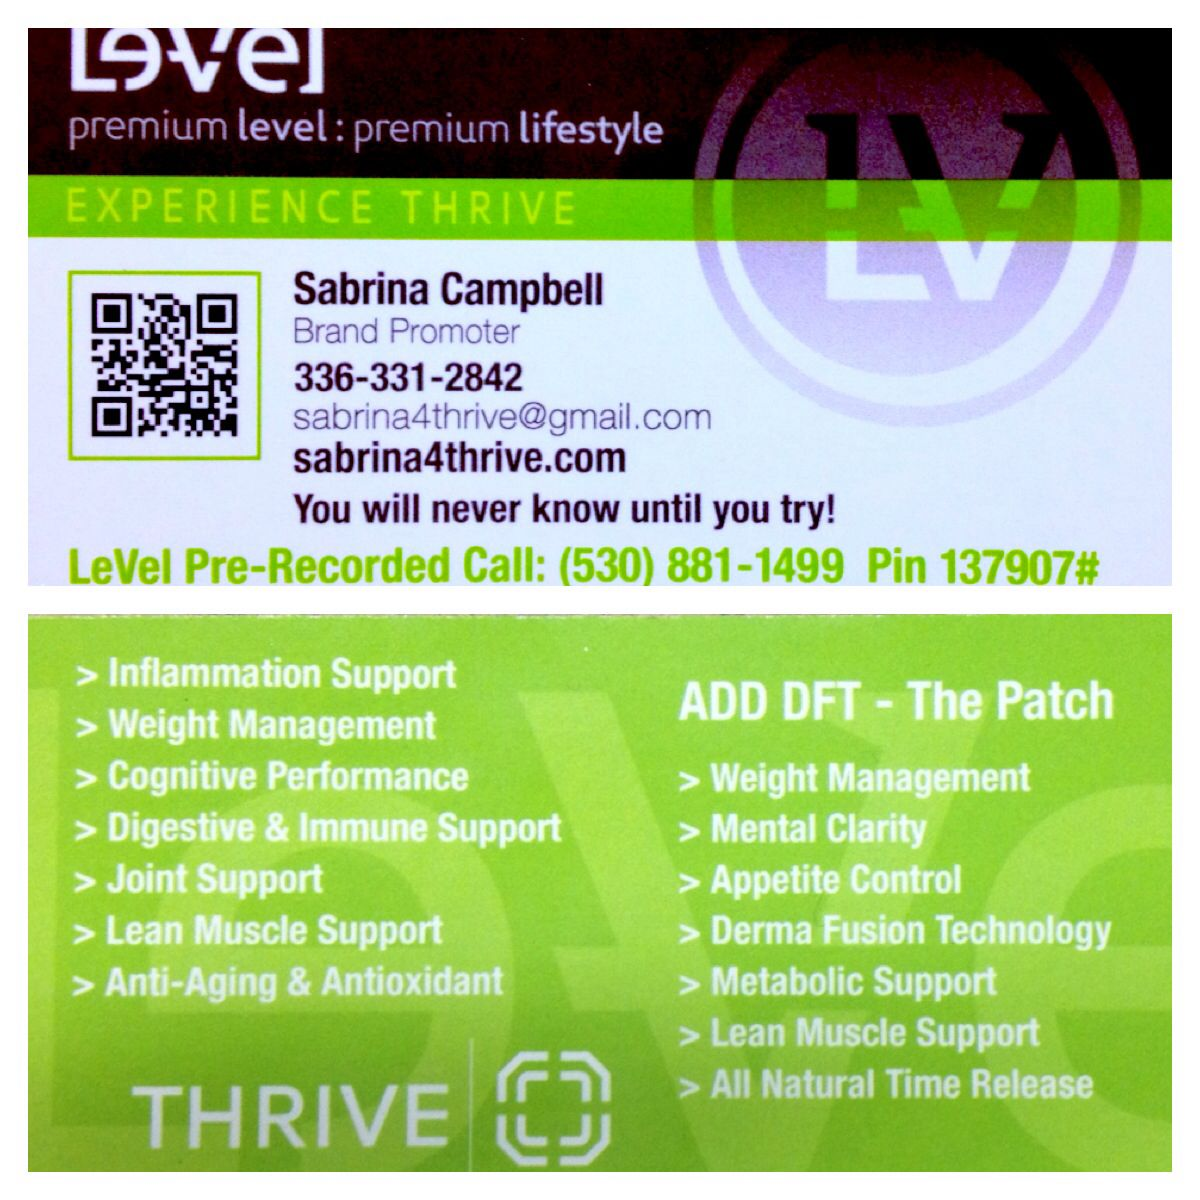 Images Of Le Vel Business Cards Google Search Level Thrive Life